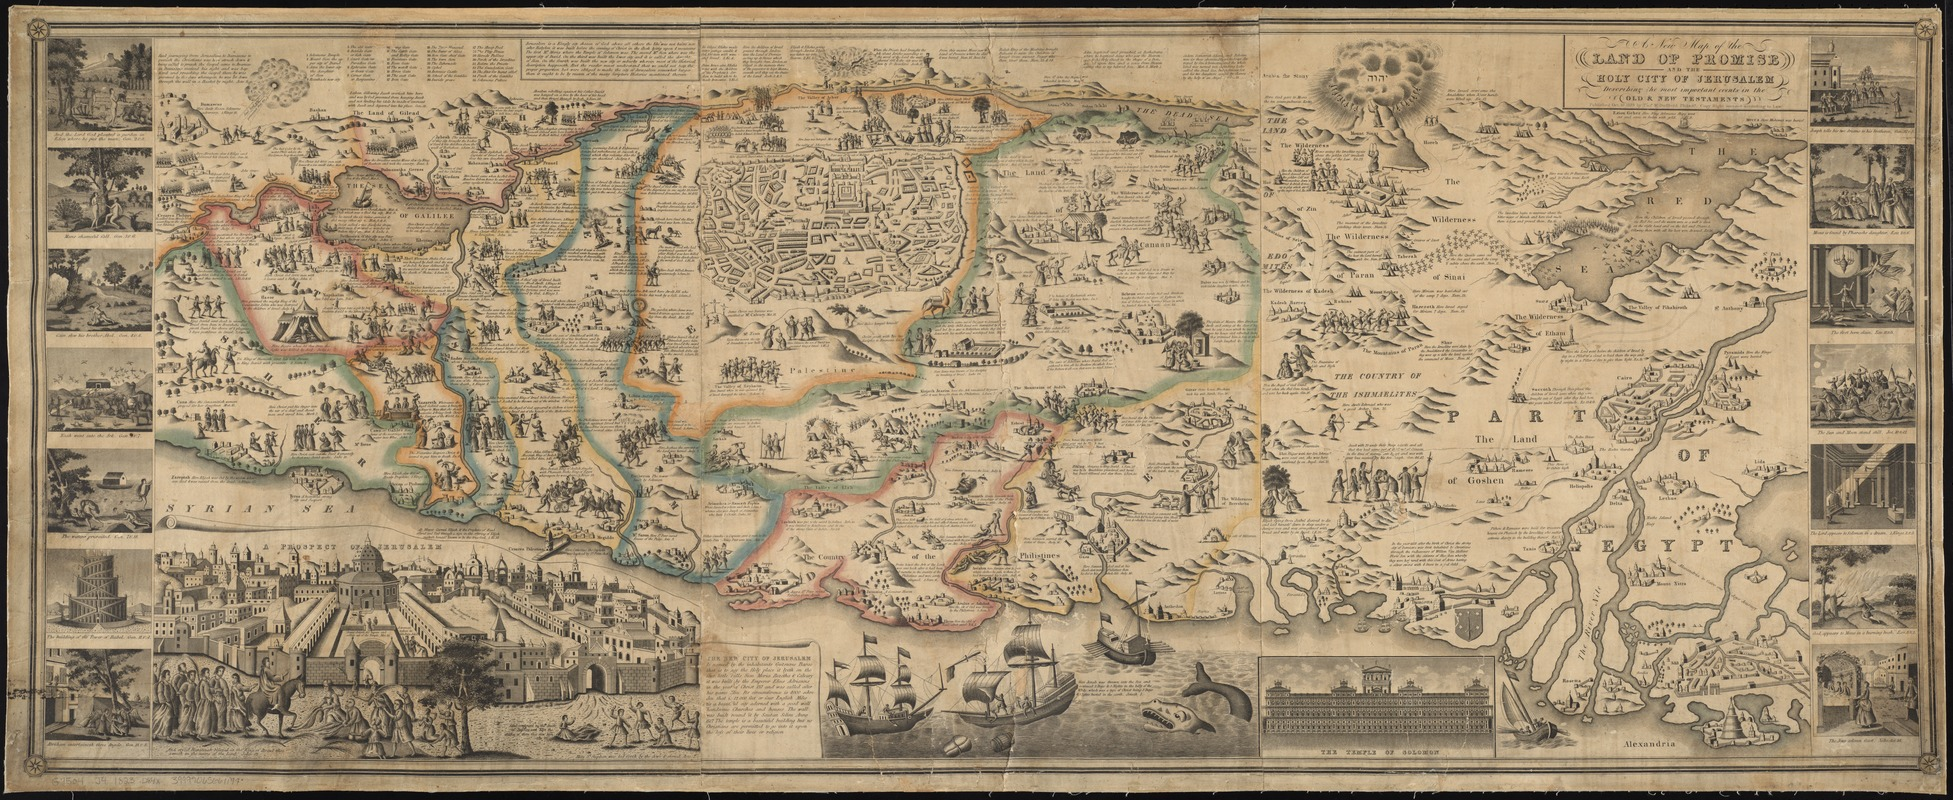 A new map of the land of promise and the holy city of jerusalem a new map of the land of promise and the holy city of jerusalem describing the gumiabroncs Image collections